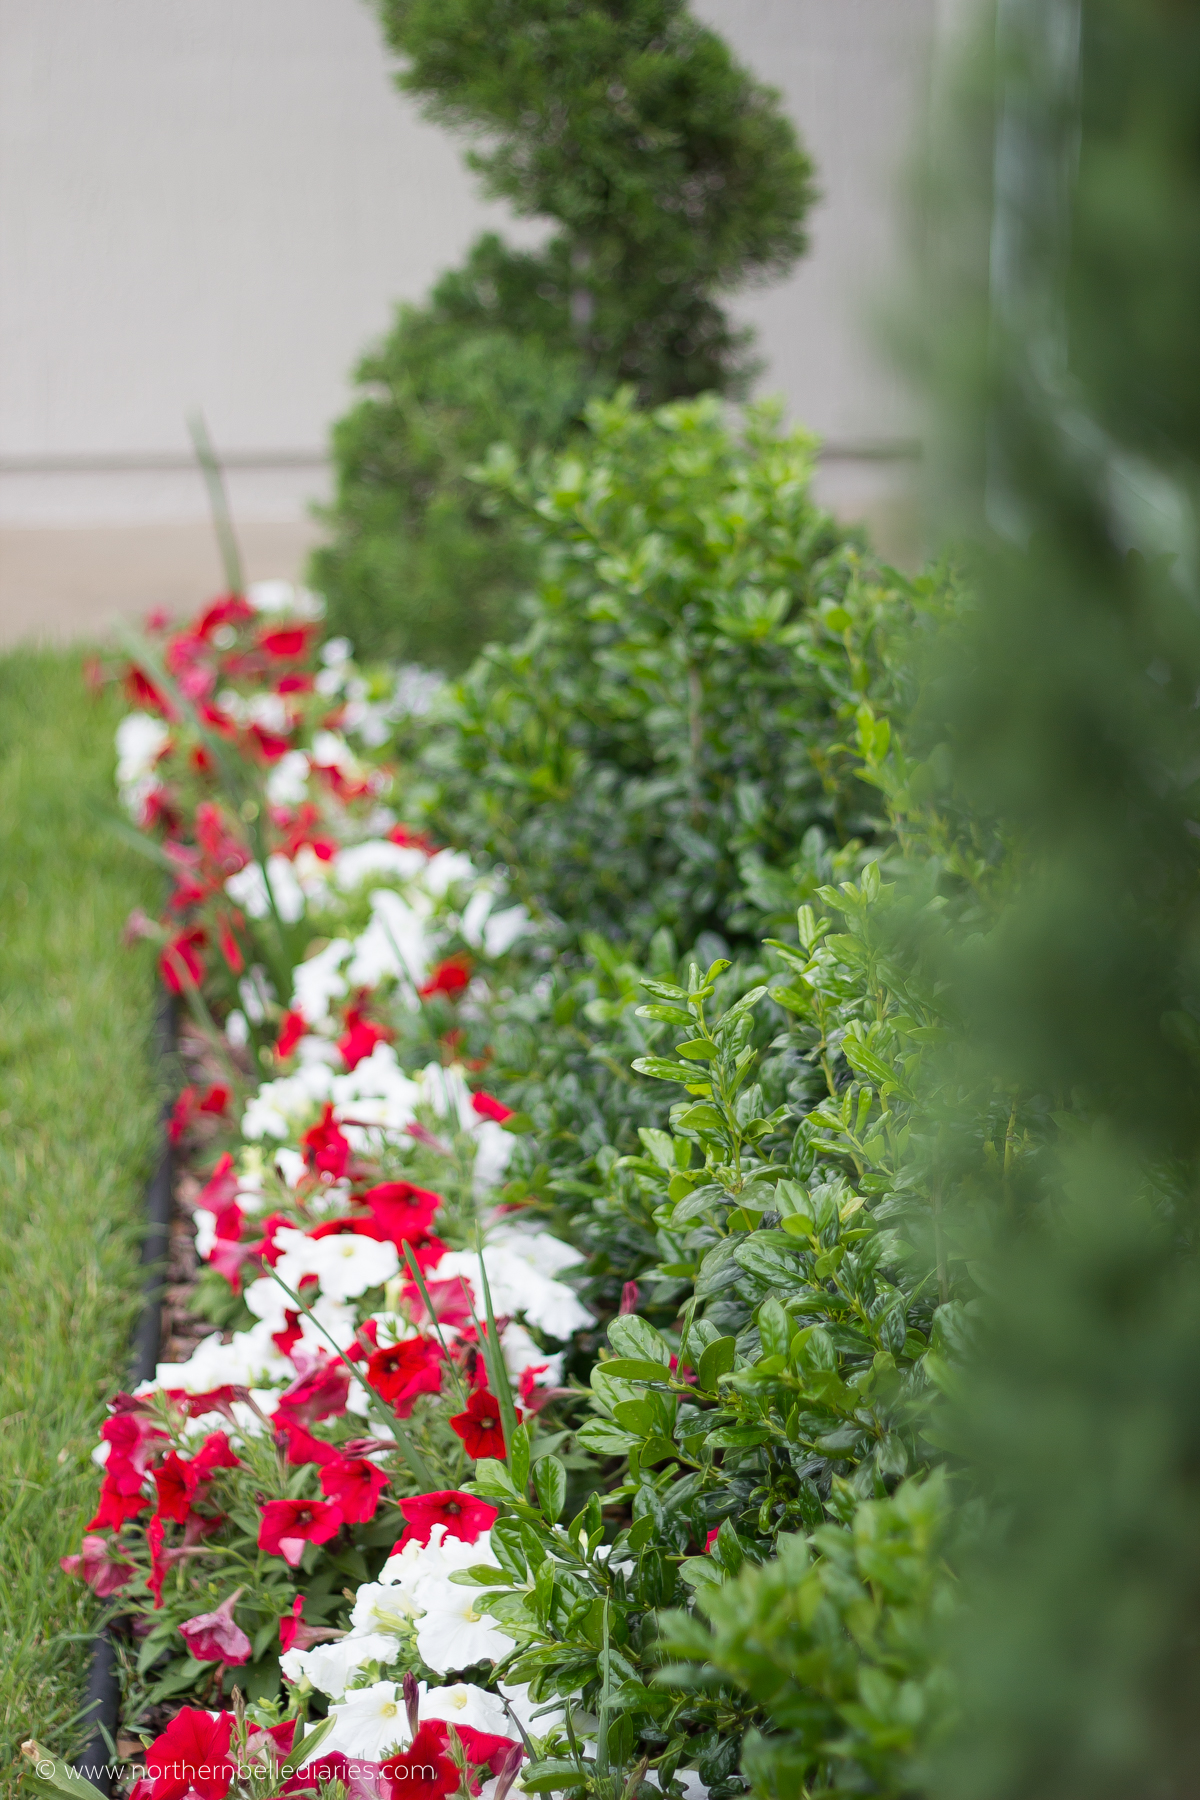 red and white petunias and sir winston churchill narcissus with holly in flowerbed